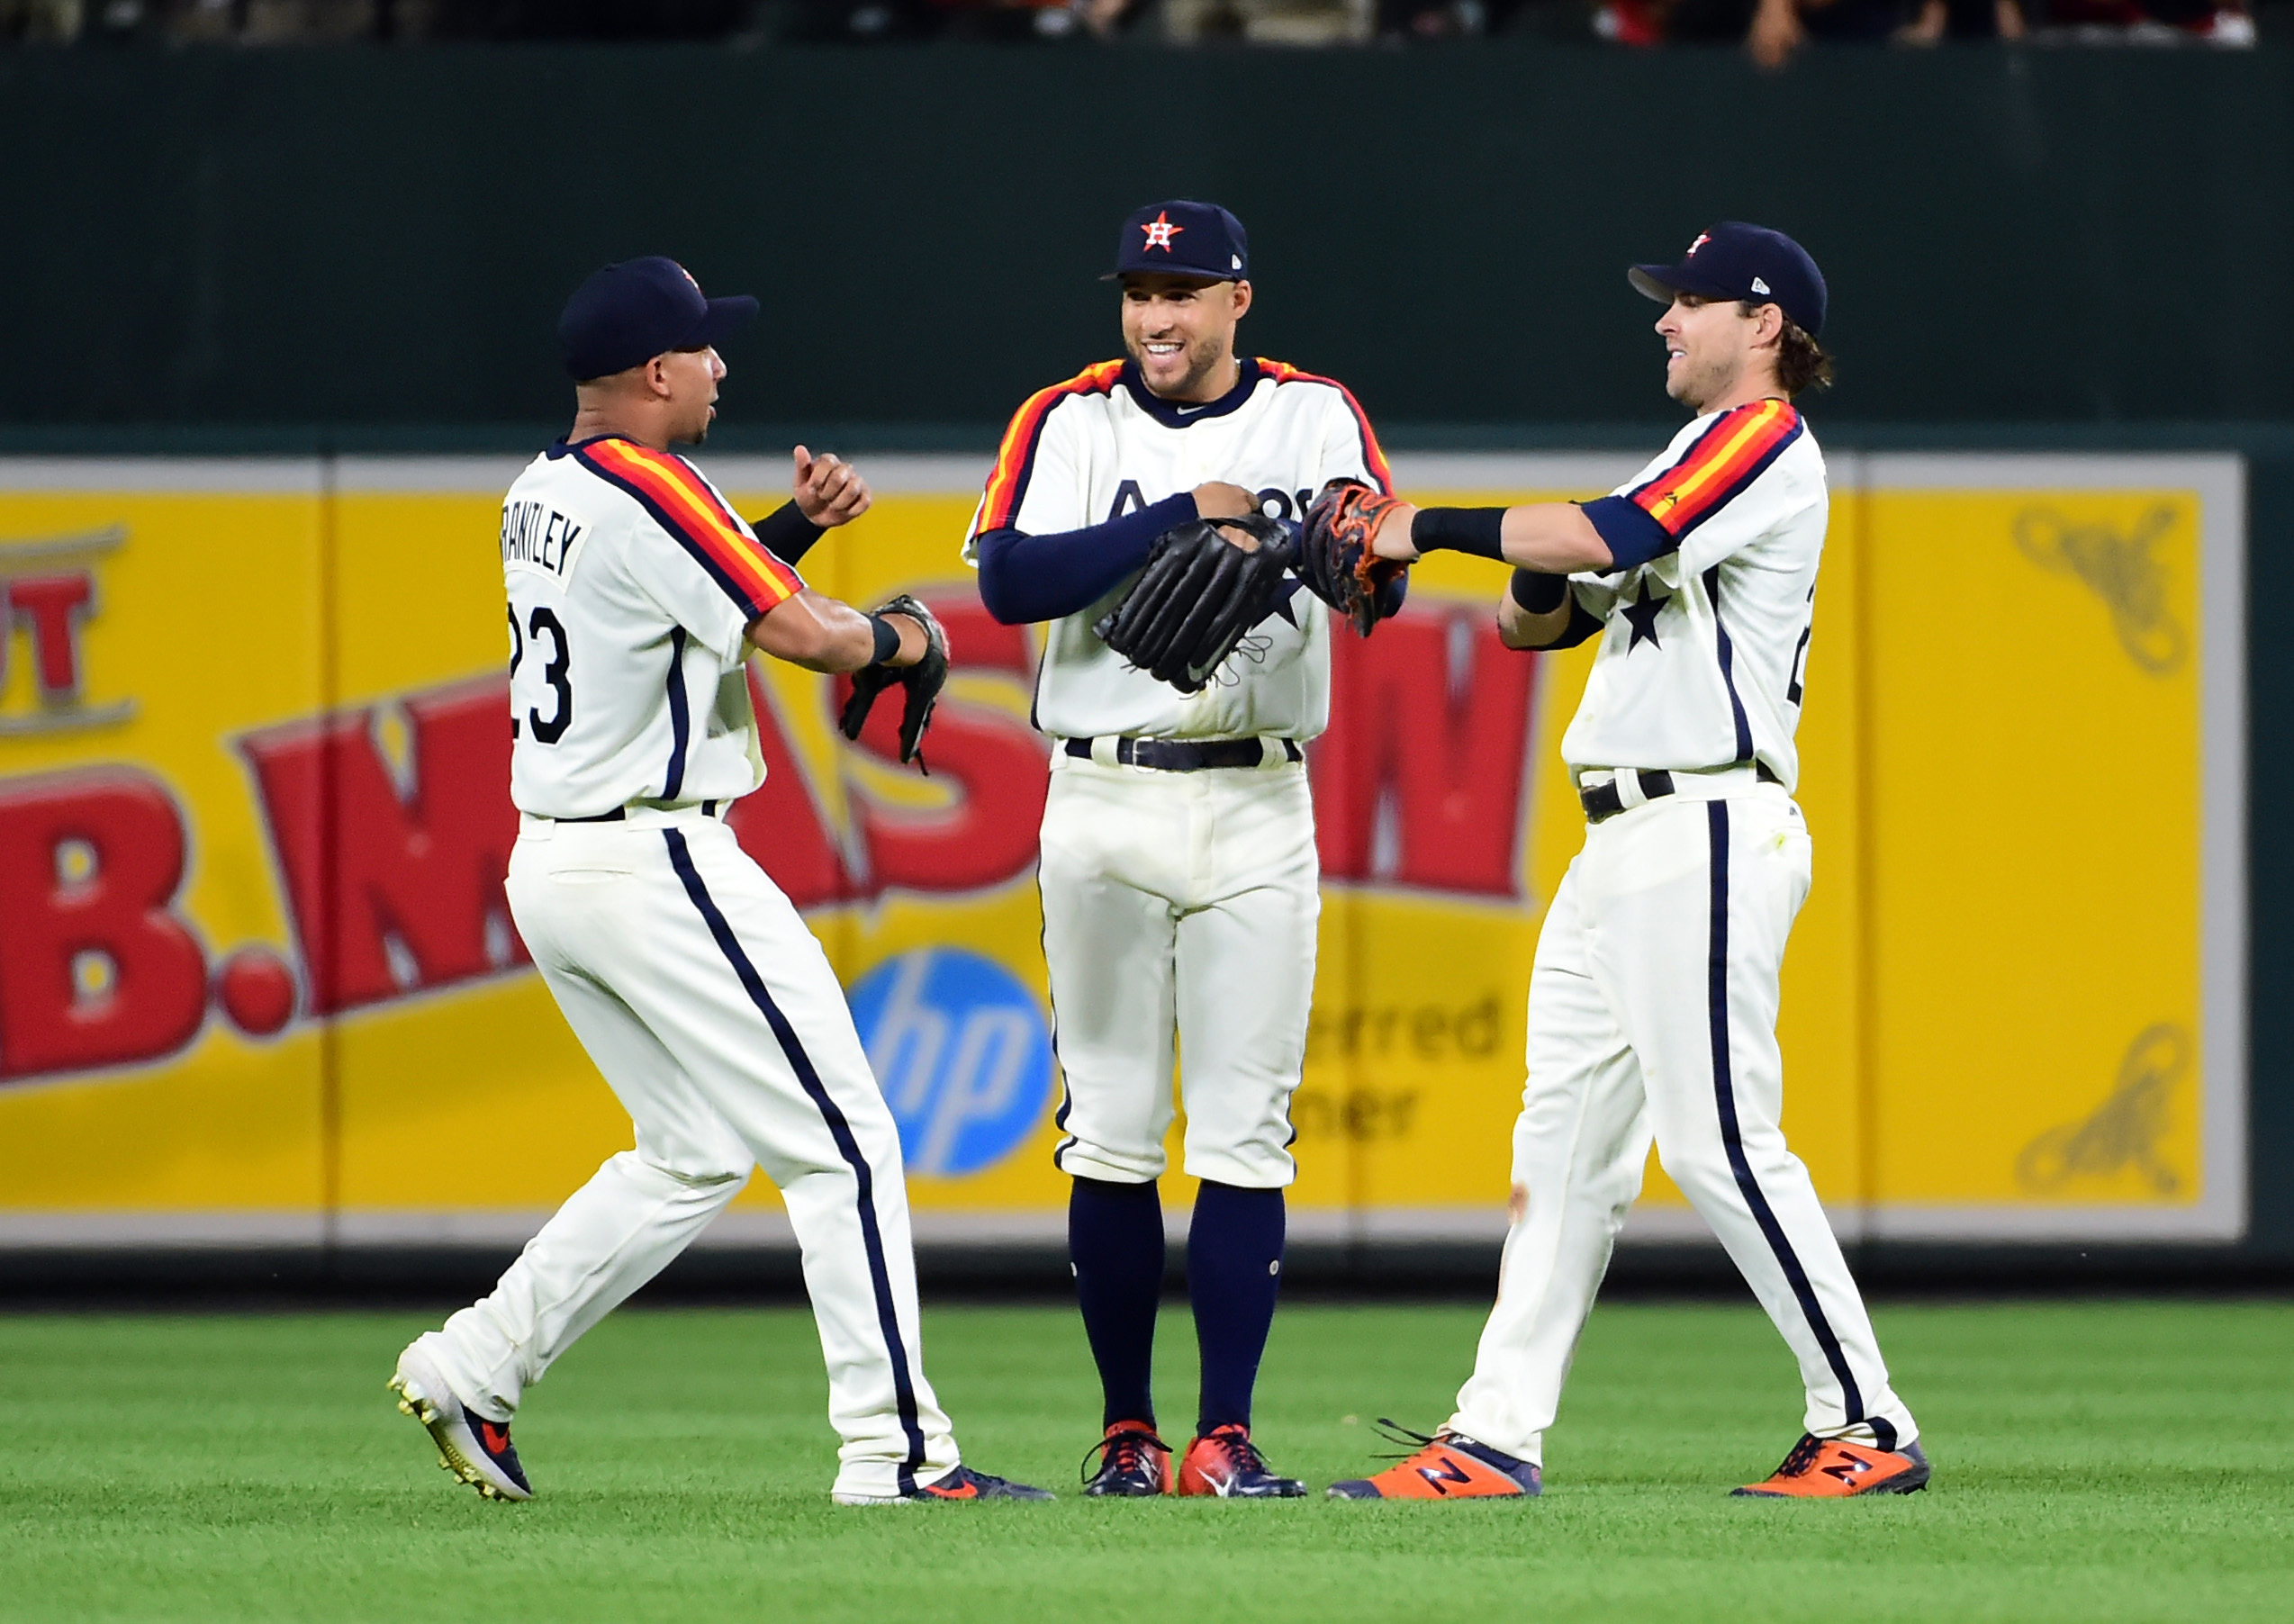 MLB: Houston Astros at Baltimore Orioles